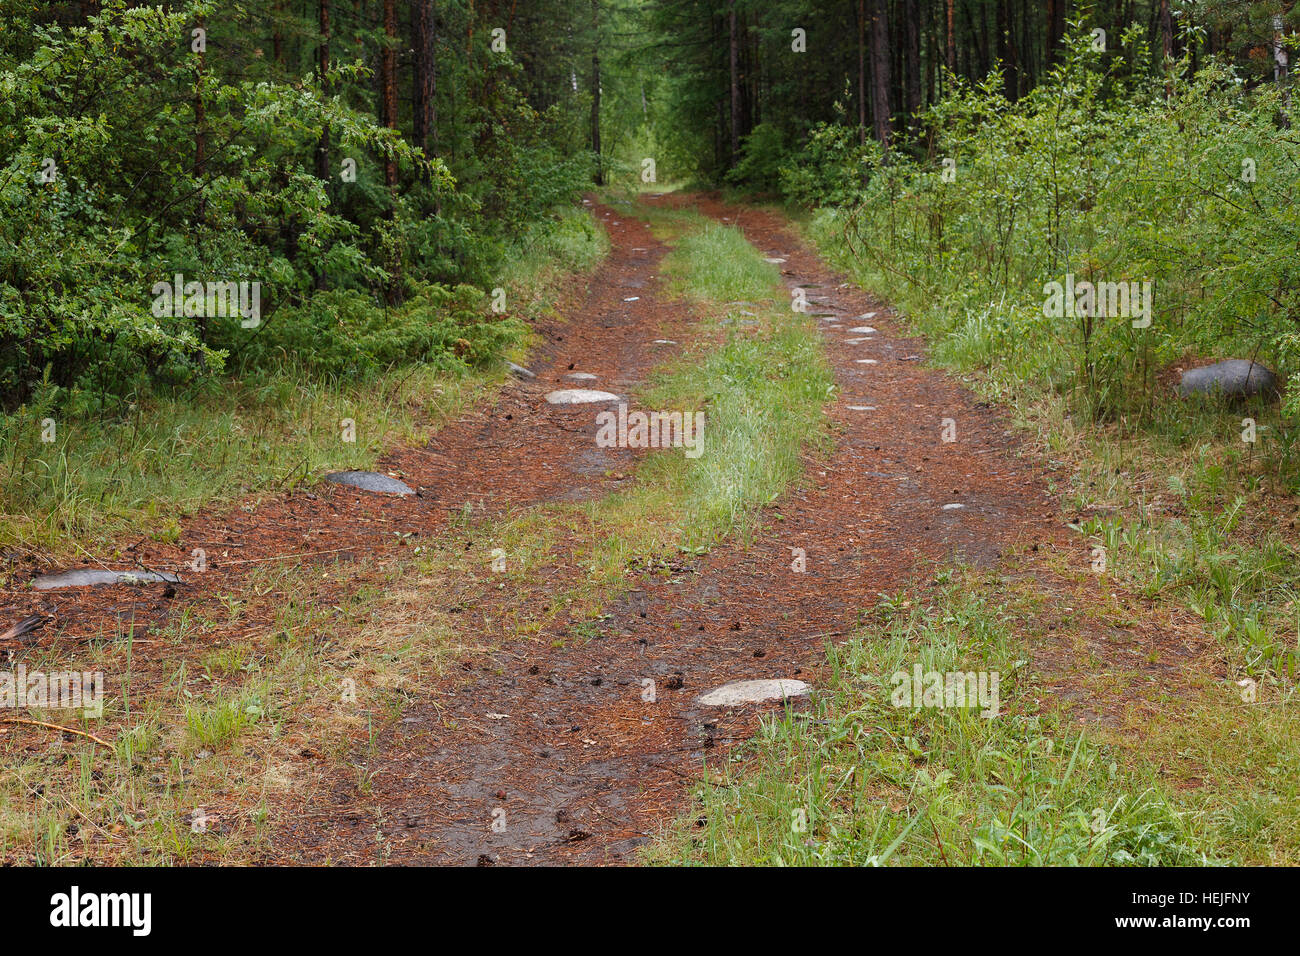 Track through forest in Siberia, Russia - Stock Image